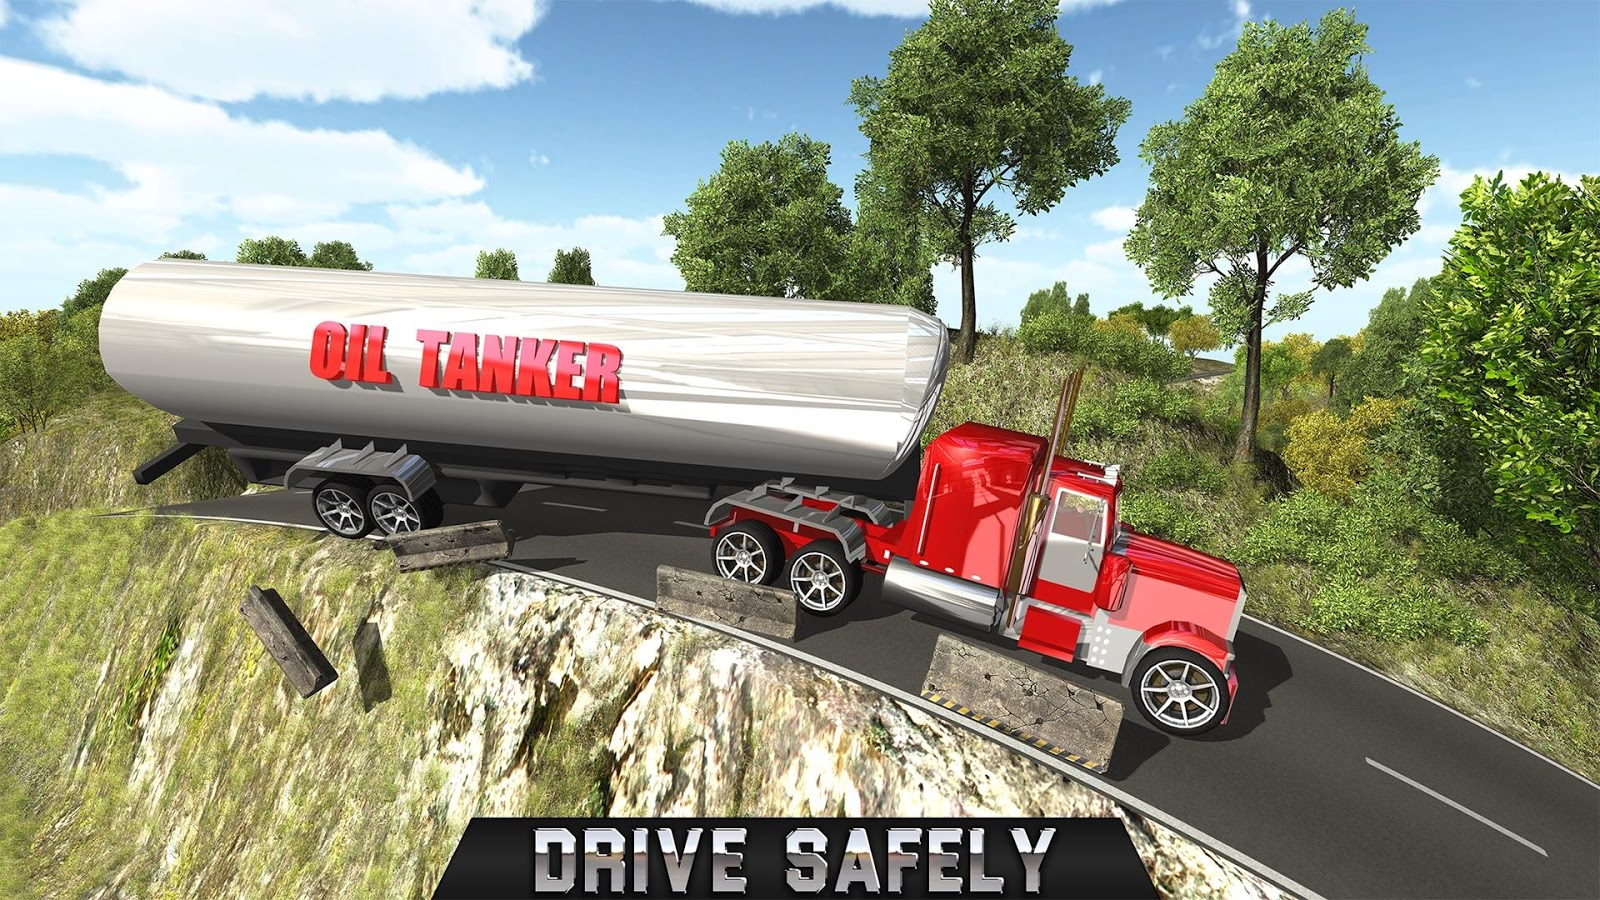 Offroad Oil Tanker Truck Cargo   Android Apps on Google Play Google Play